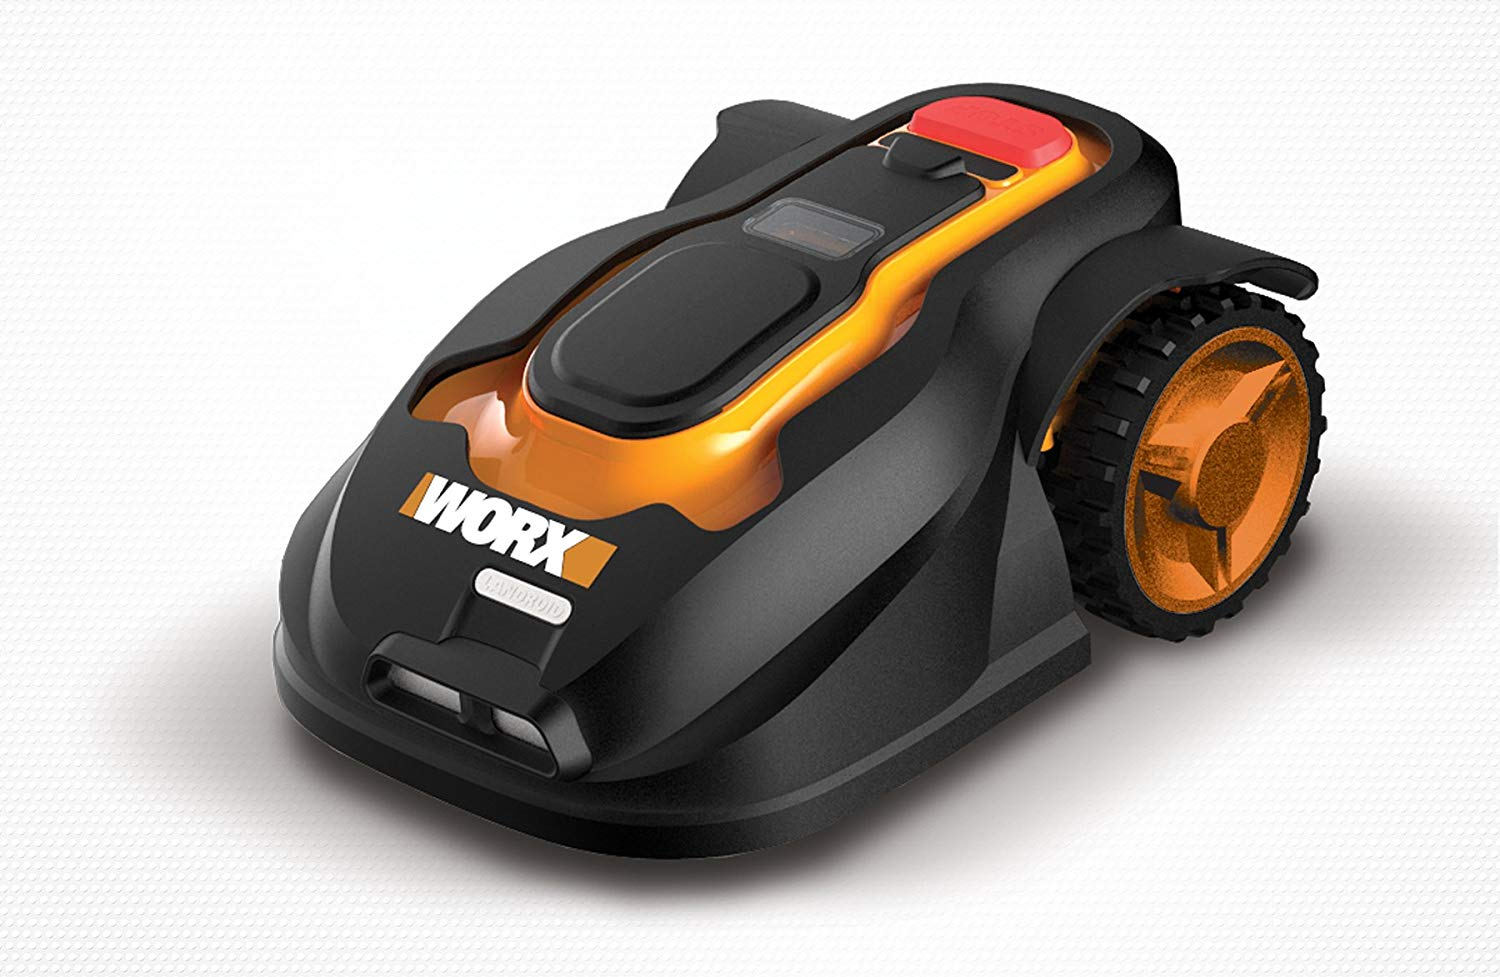 Orange and black robotic lawn mower from Worx